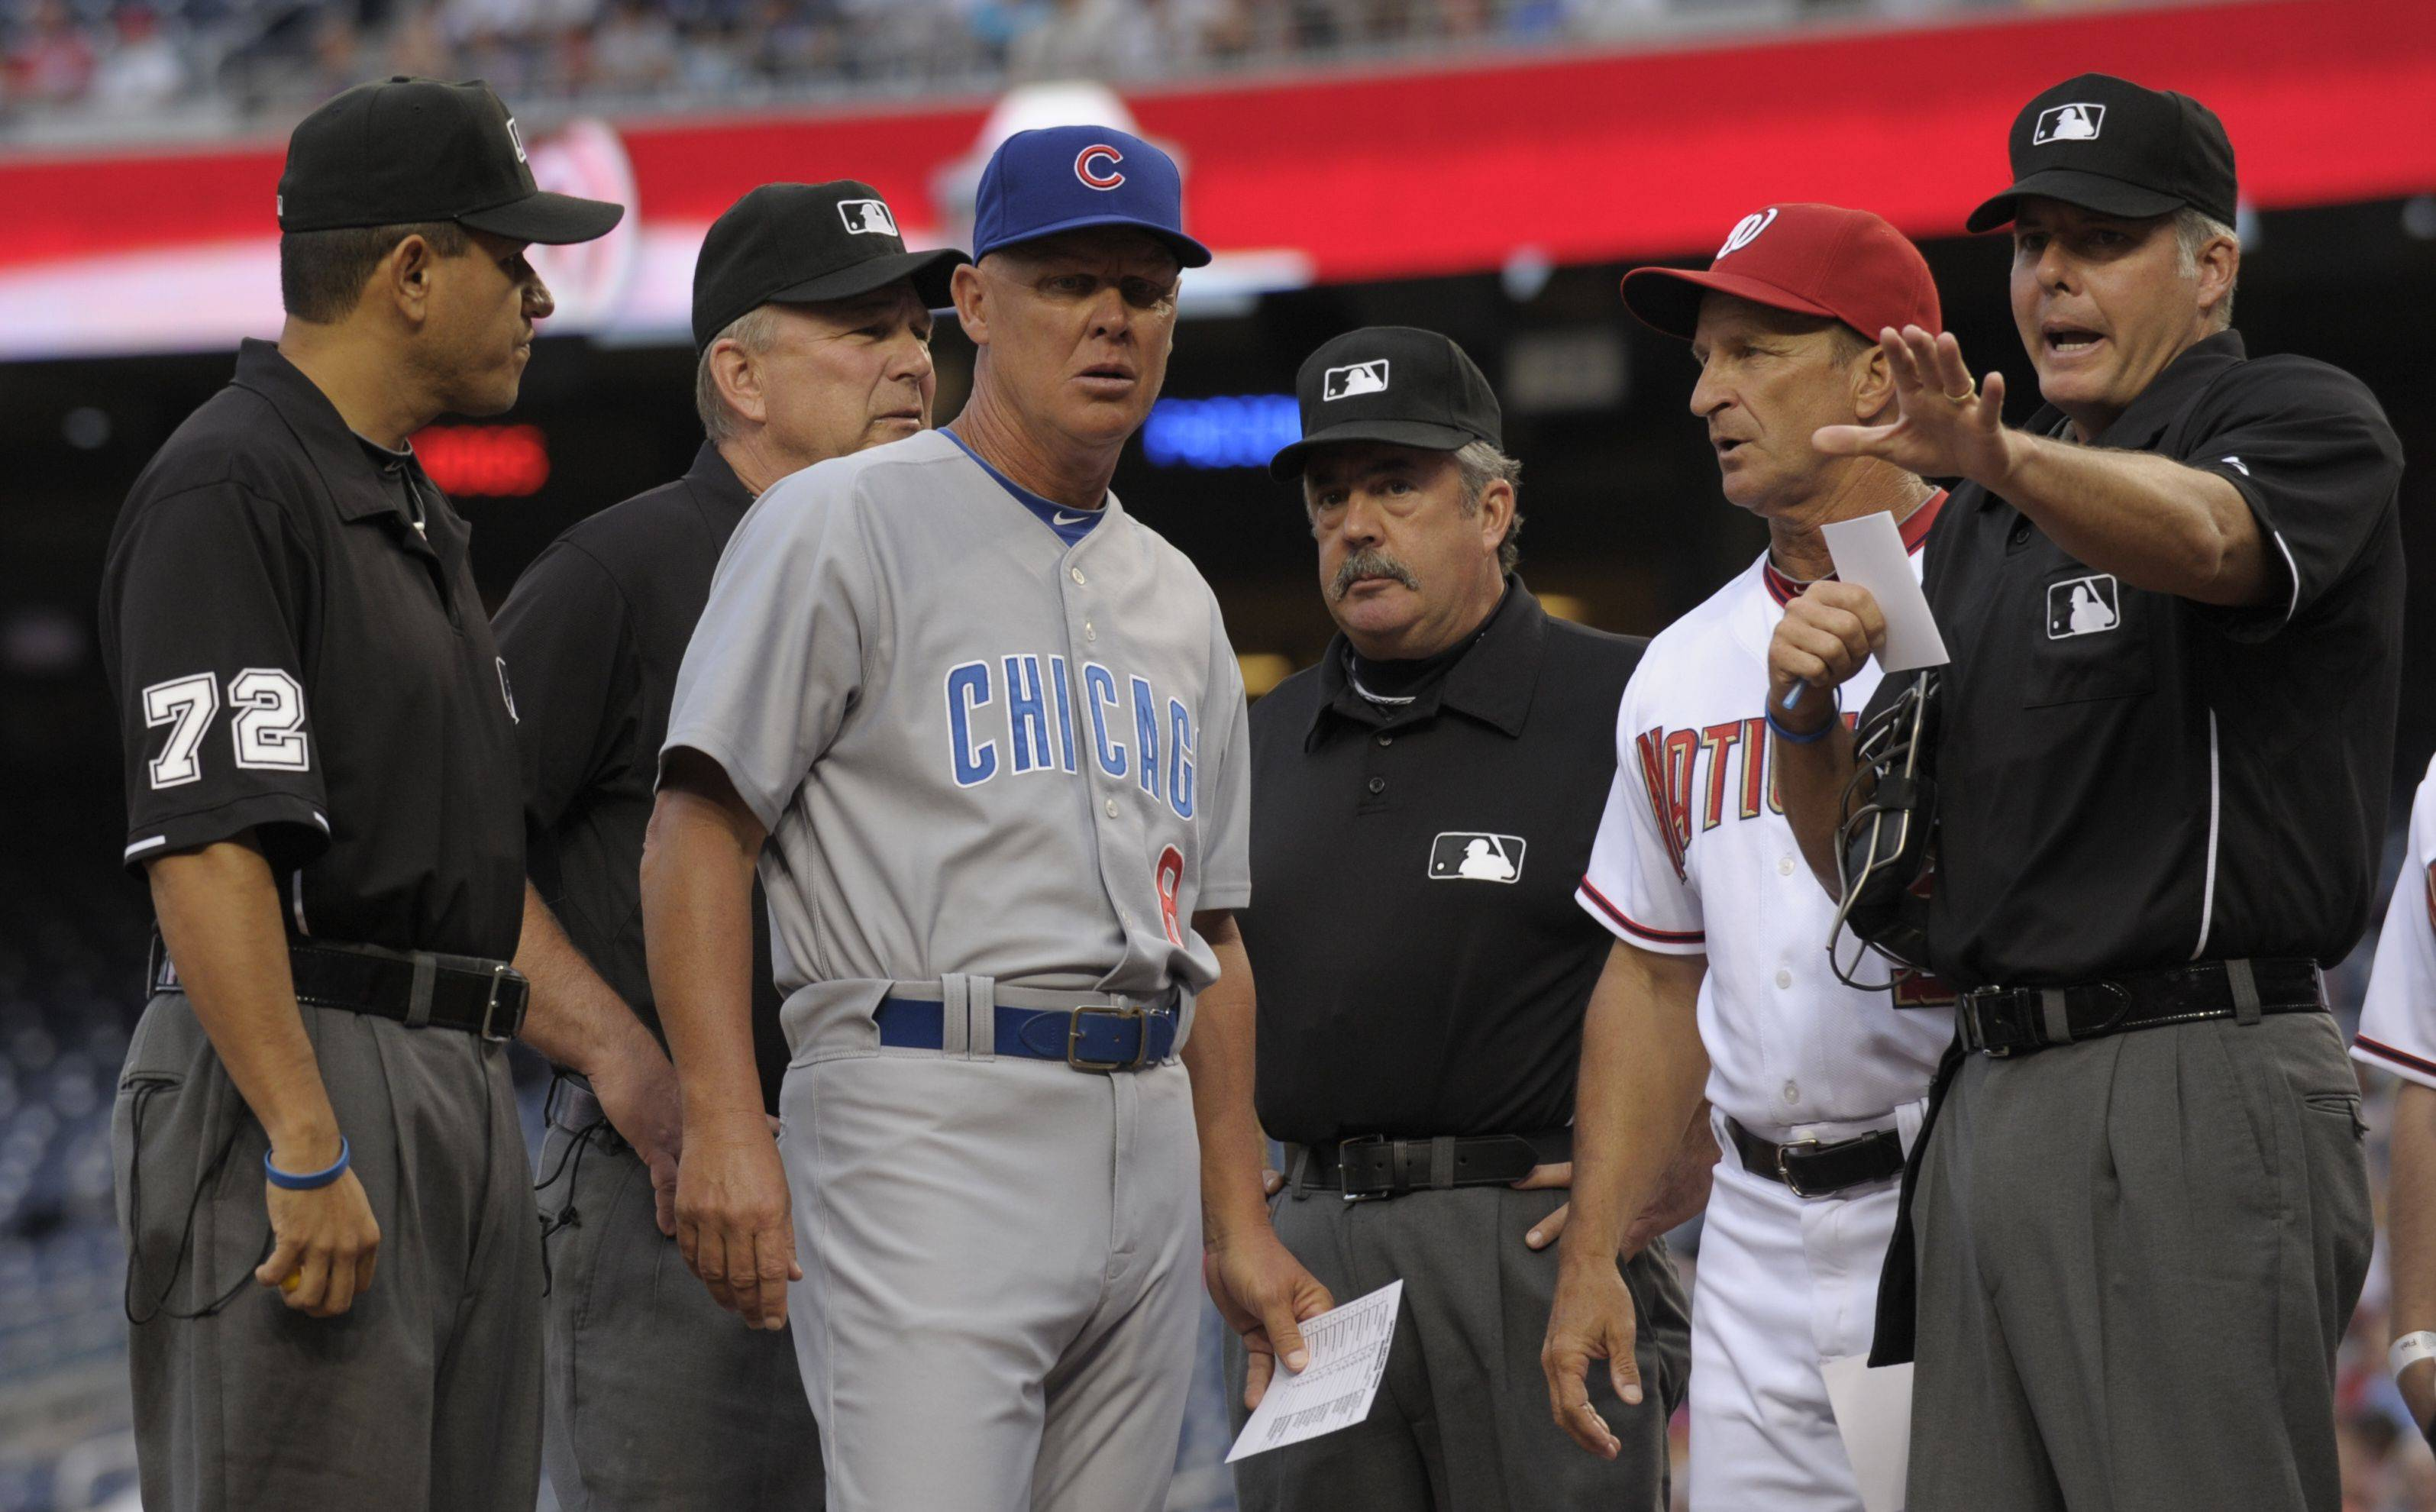 Chicago Cubs manager Mike Quade, third from left, and Washington Nationals manager Jim Riggleman, second from right, talk with the umpires before the start of their game at Nationals Park in Washington.